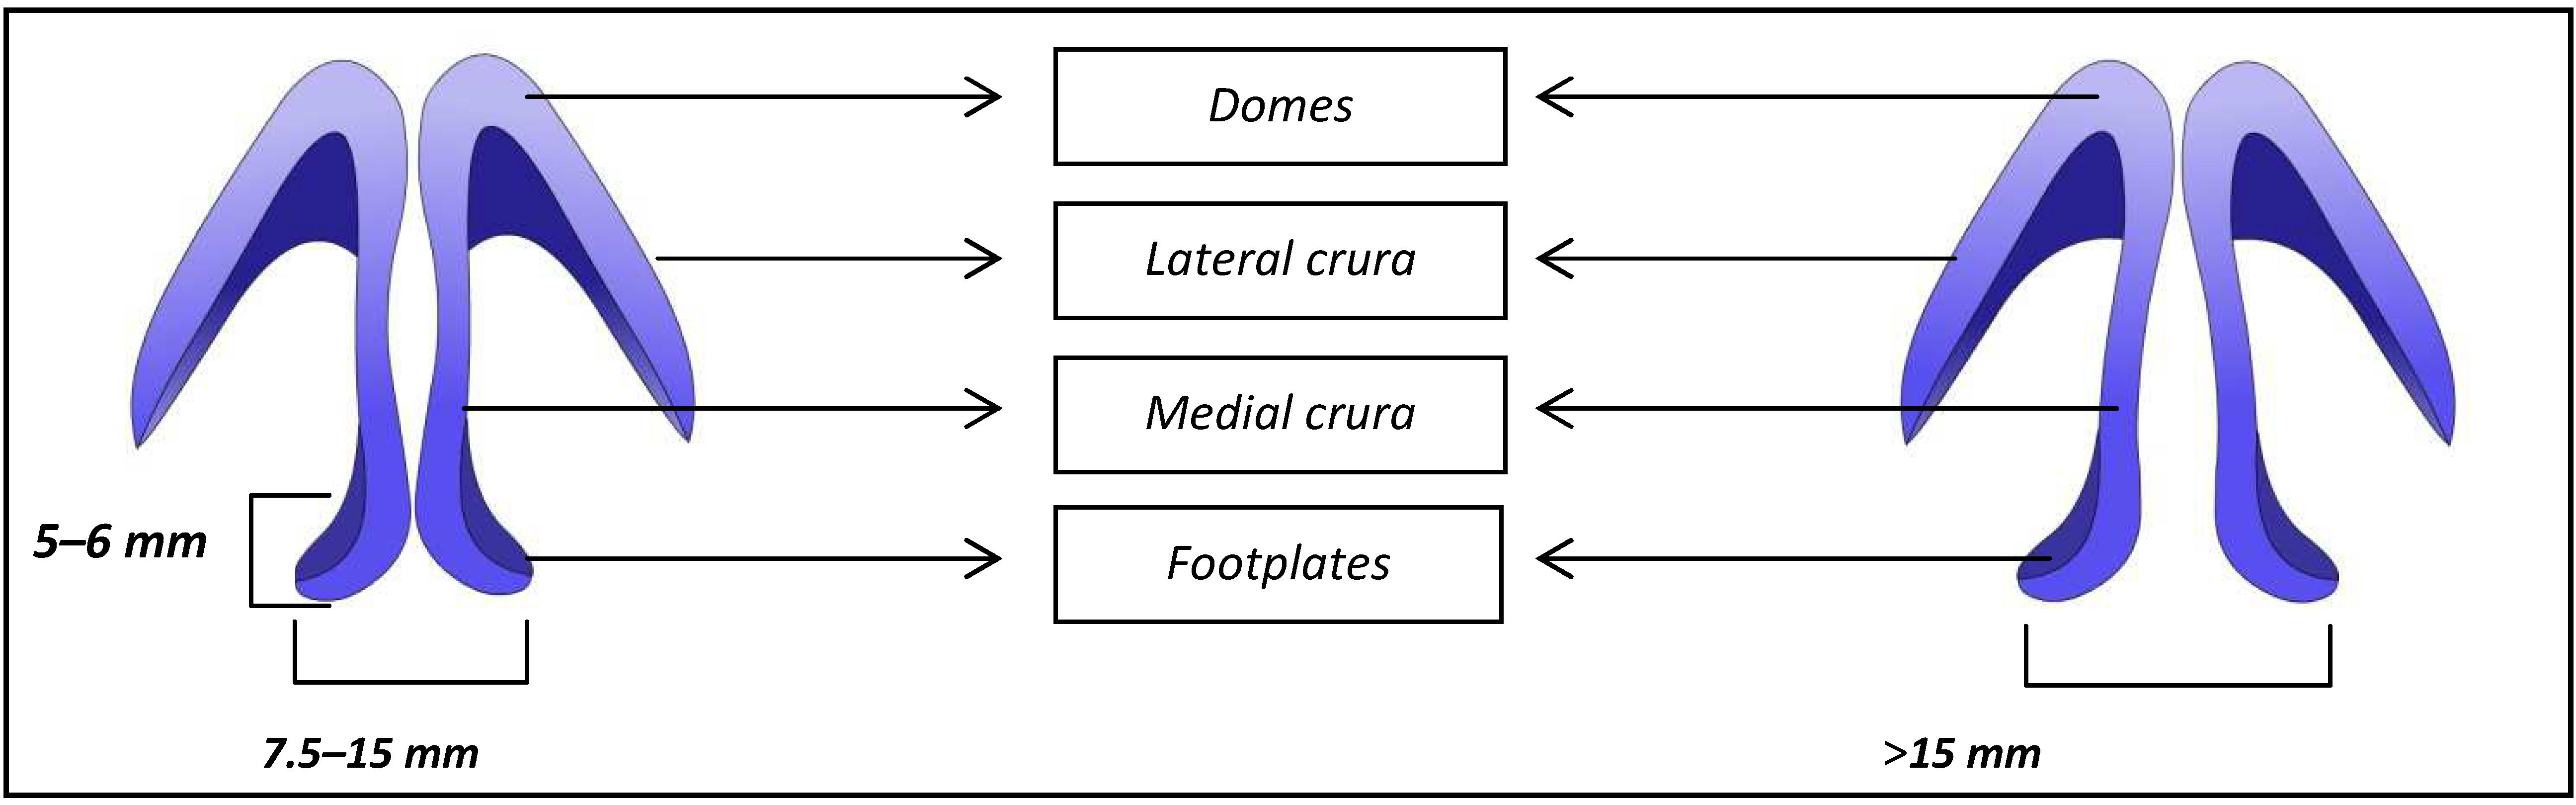 Sutures or Resection of the Protruding End of Medial Crura | IntechOpen